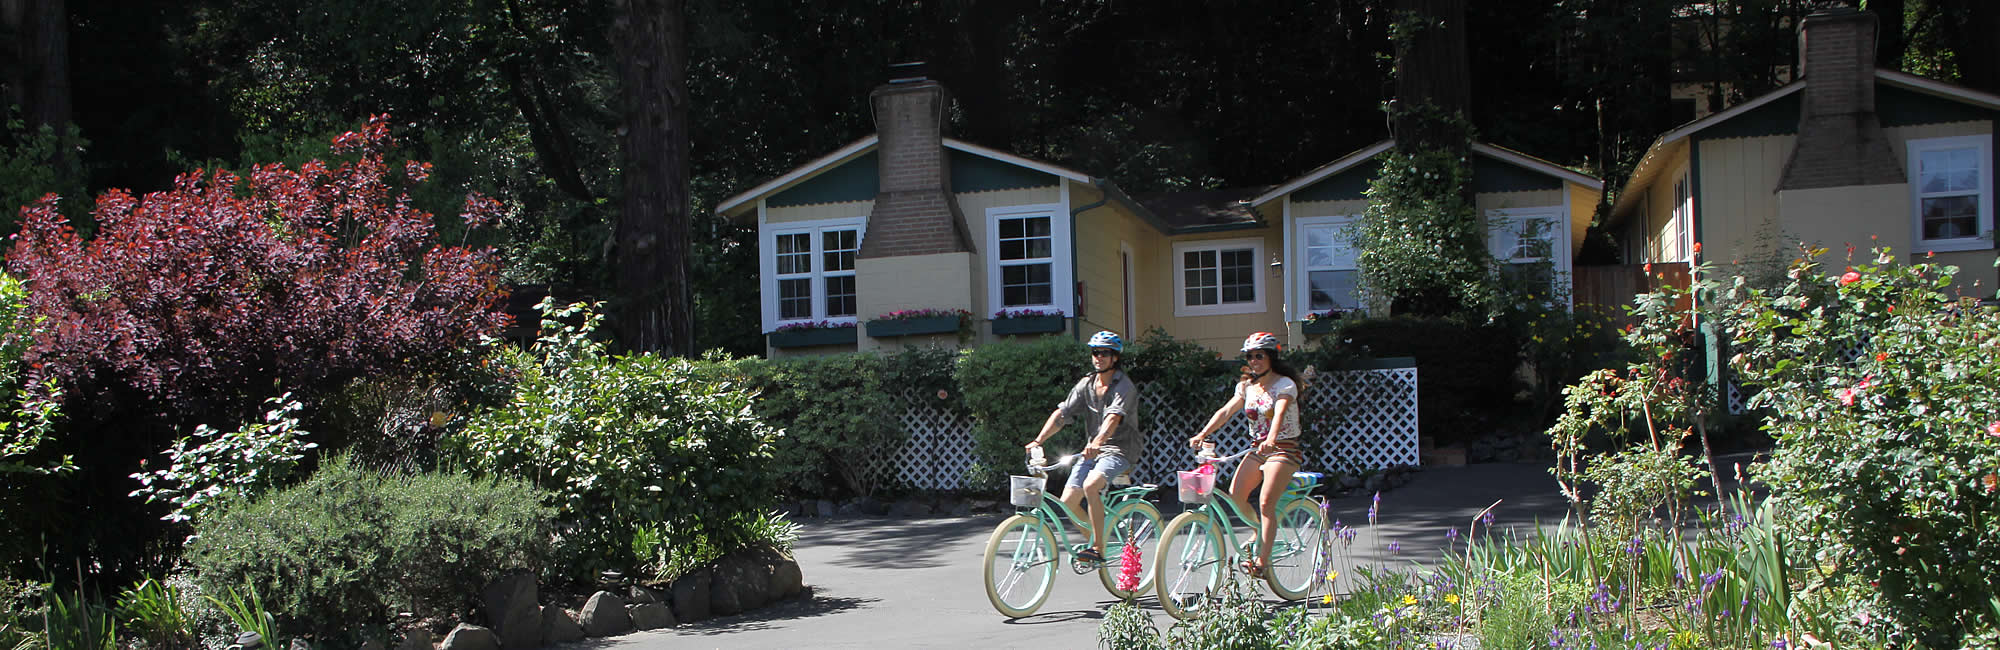 russian river bed and breakfast cottages